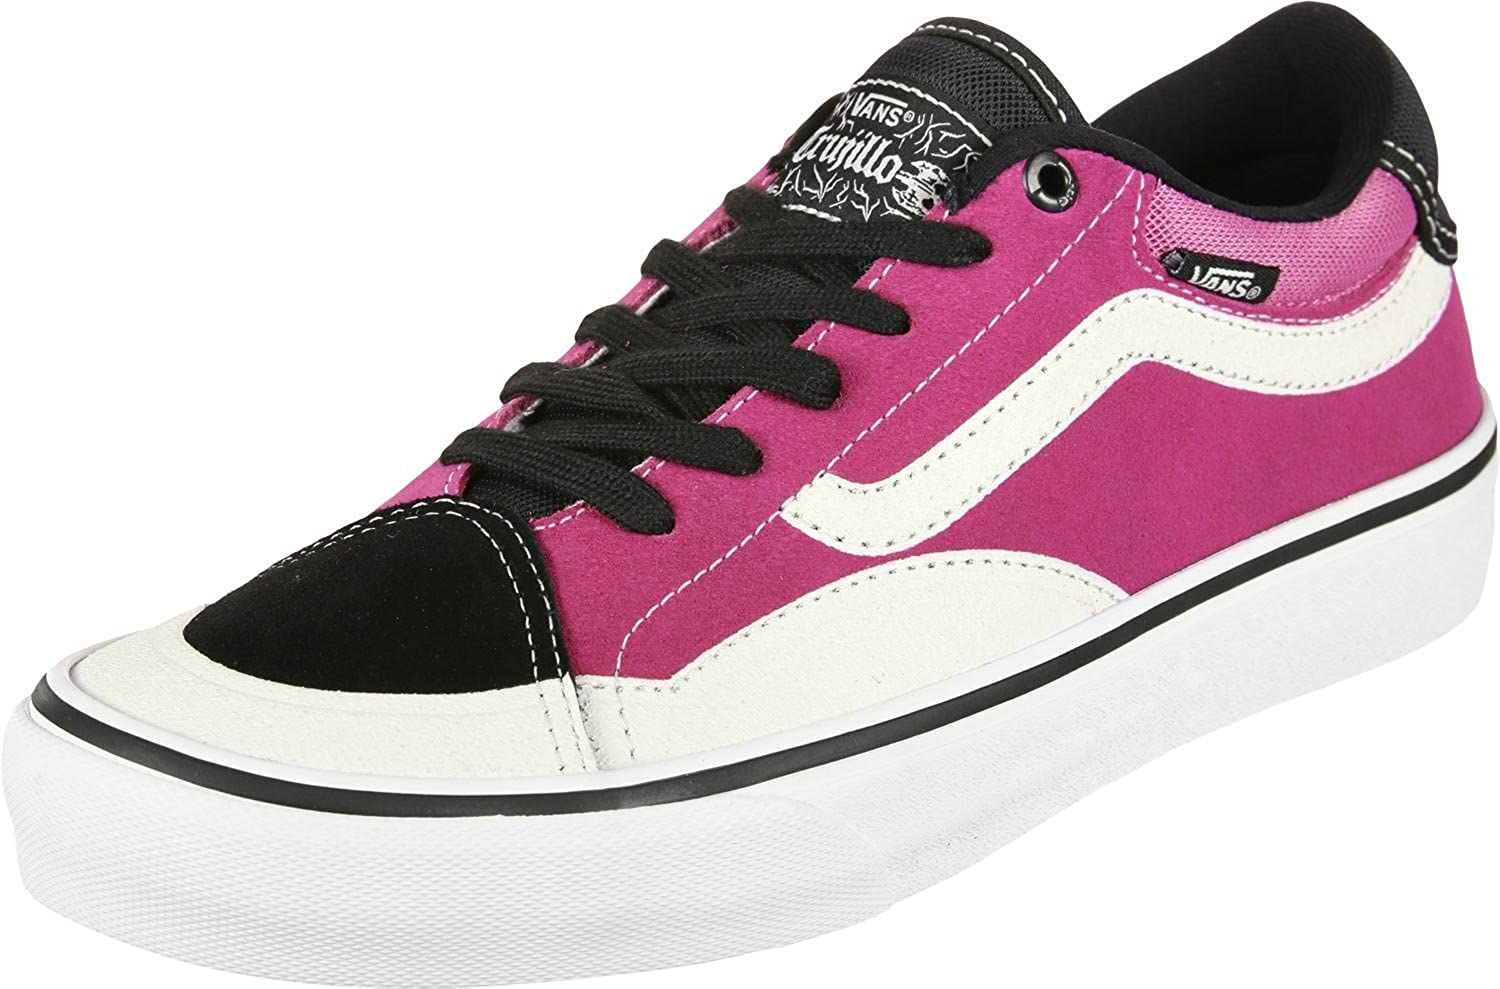 e5be32d626a7c0 Amazon.com  Vans TNT Advanced Prototype Black Magenta White Men s Skate  Shoes Size 11  Clothing